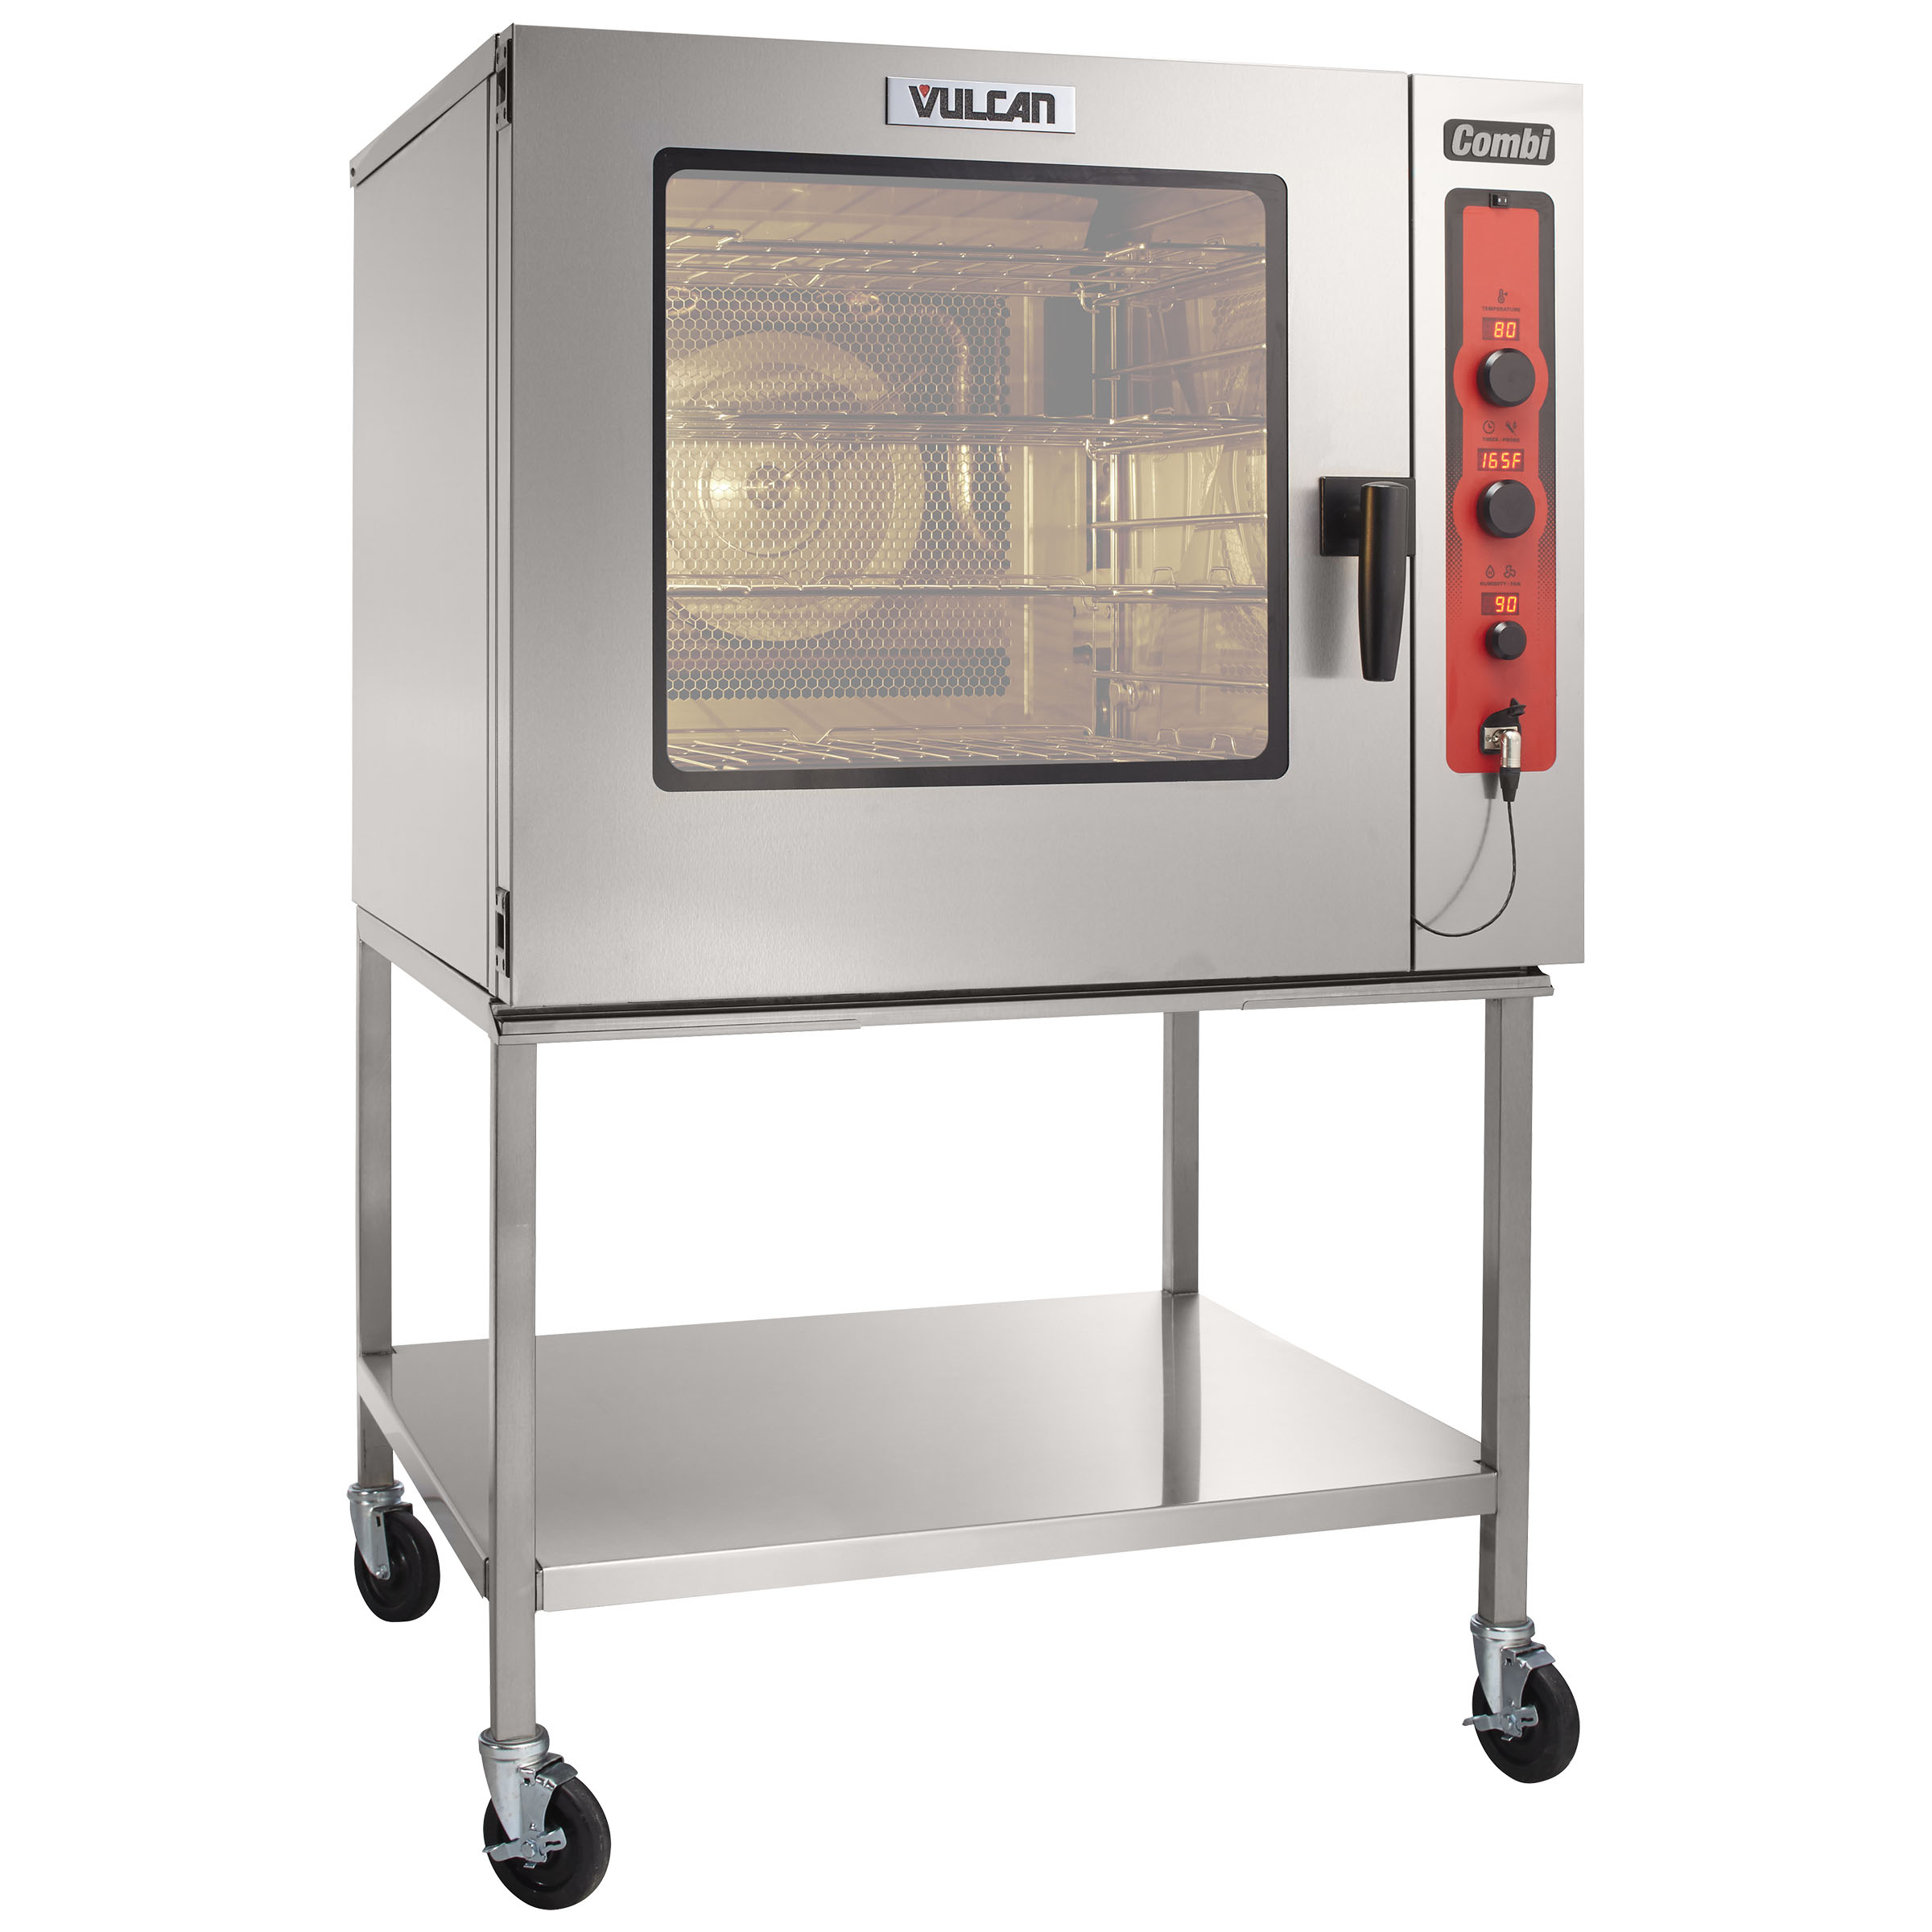 Vulcan ABC7E-480P combi oven, electric